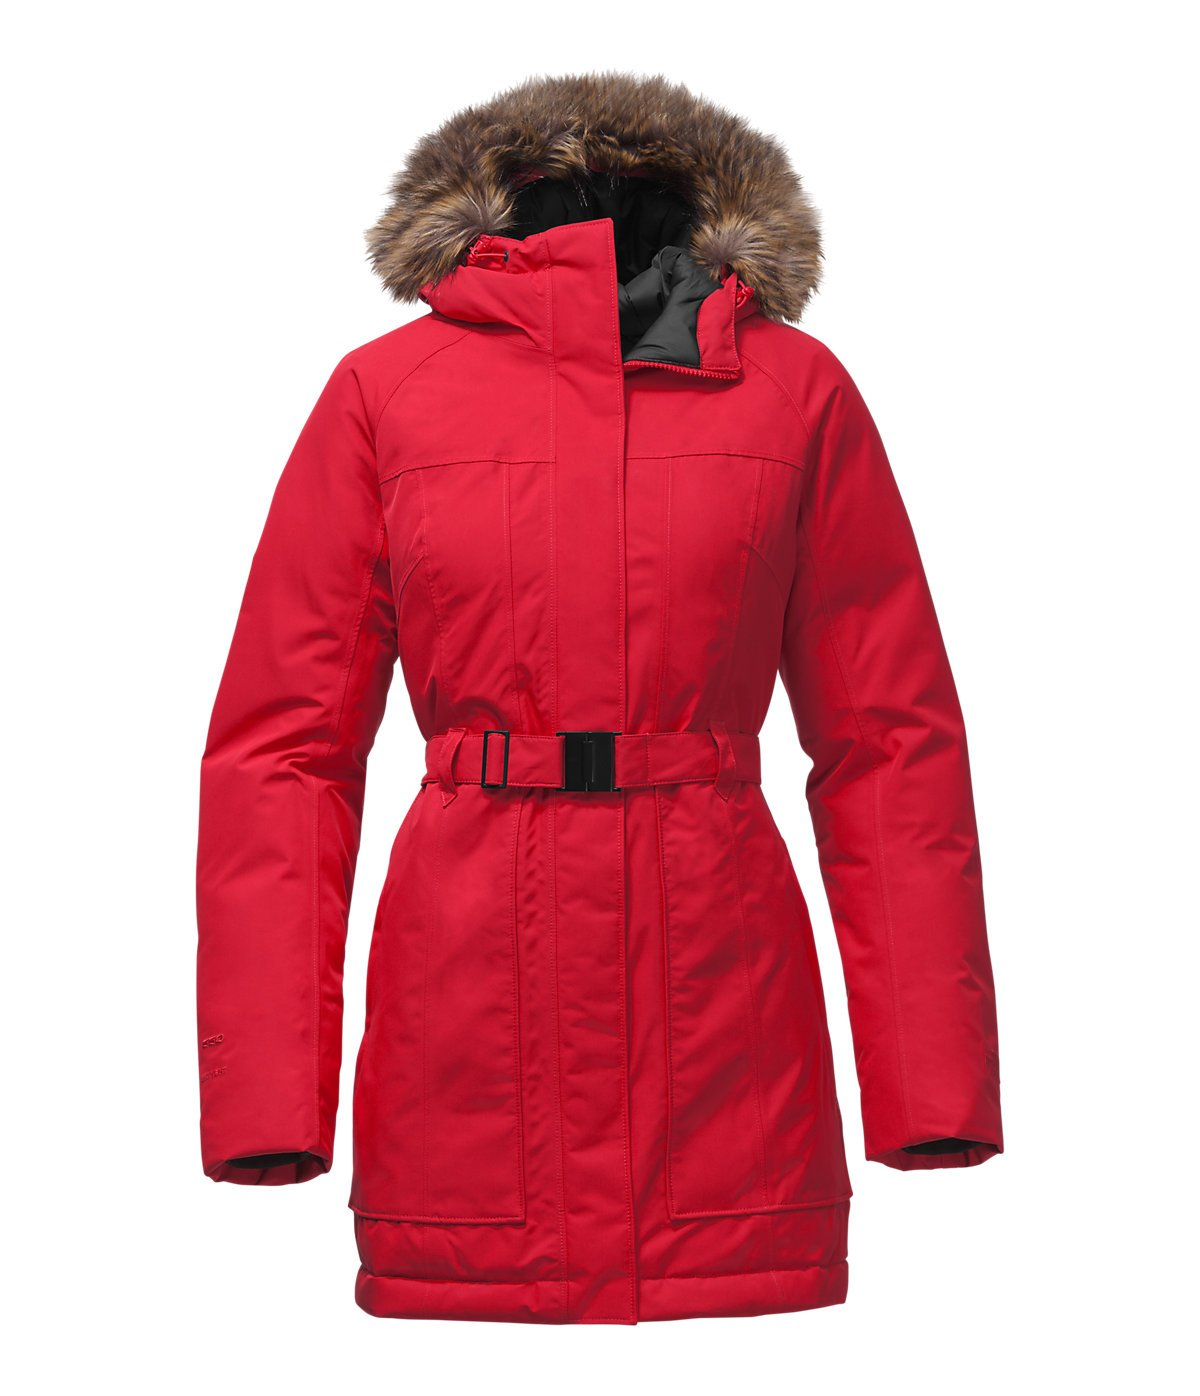 North Face Brooklyn Parka Il Womens Style : A35BR-682 Size : Large